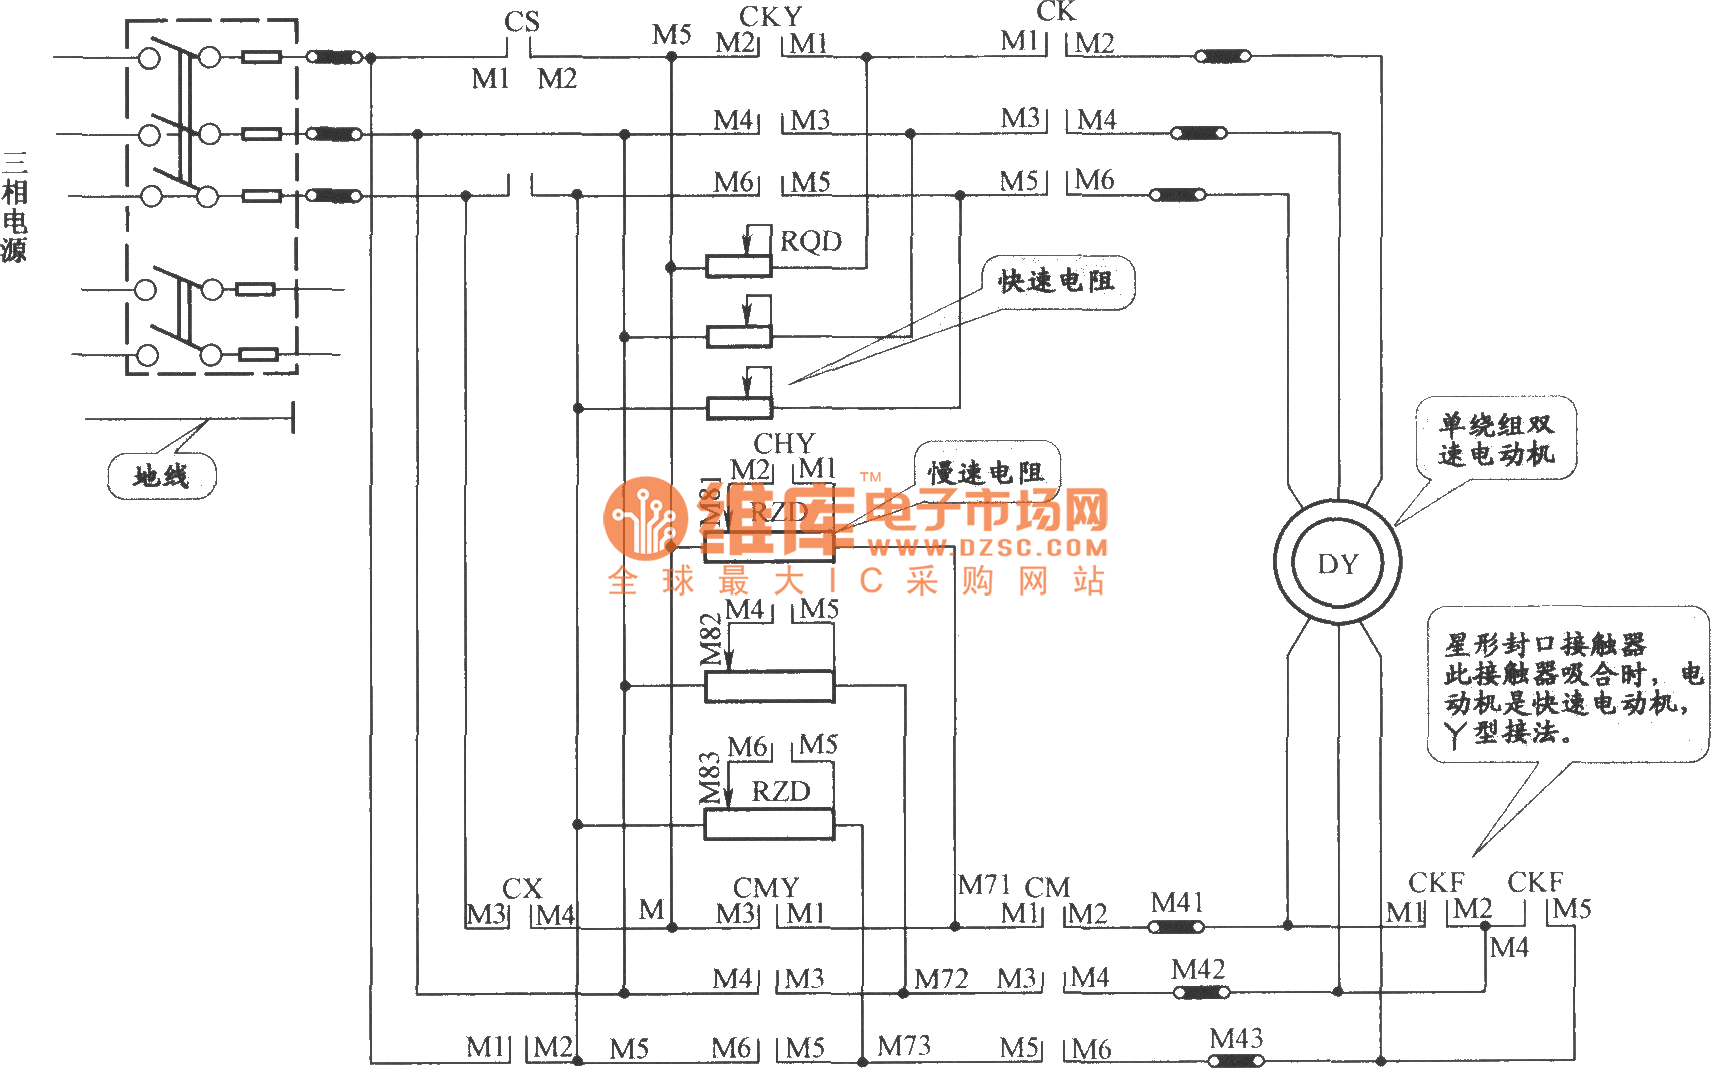 CC6b 11264 likewise 16 together with Lasercva moreover 321052917200 moreover Qx5252. on braun wiring diagram